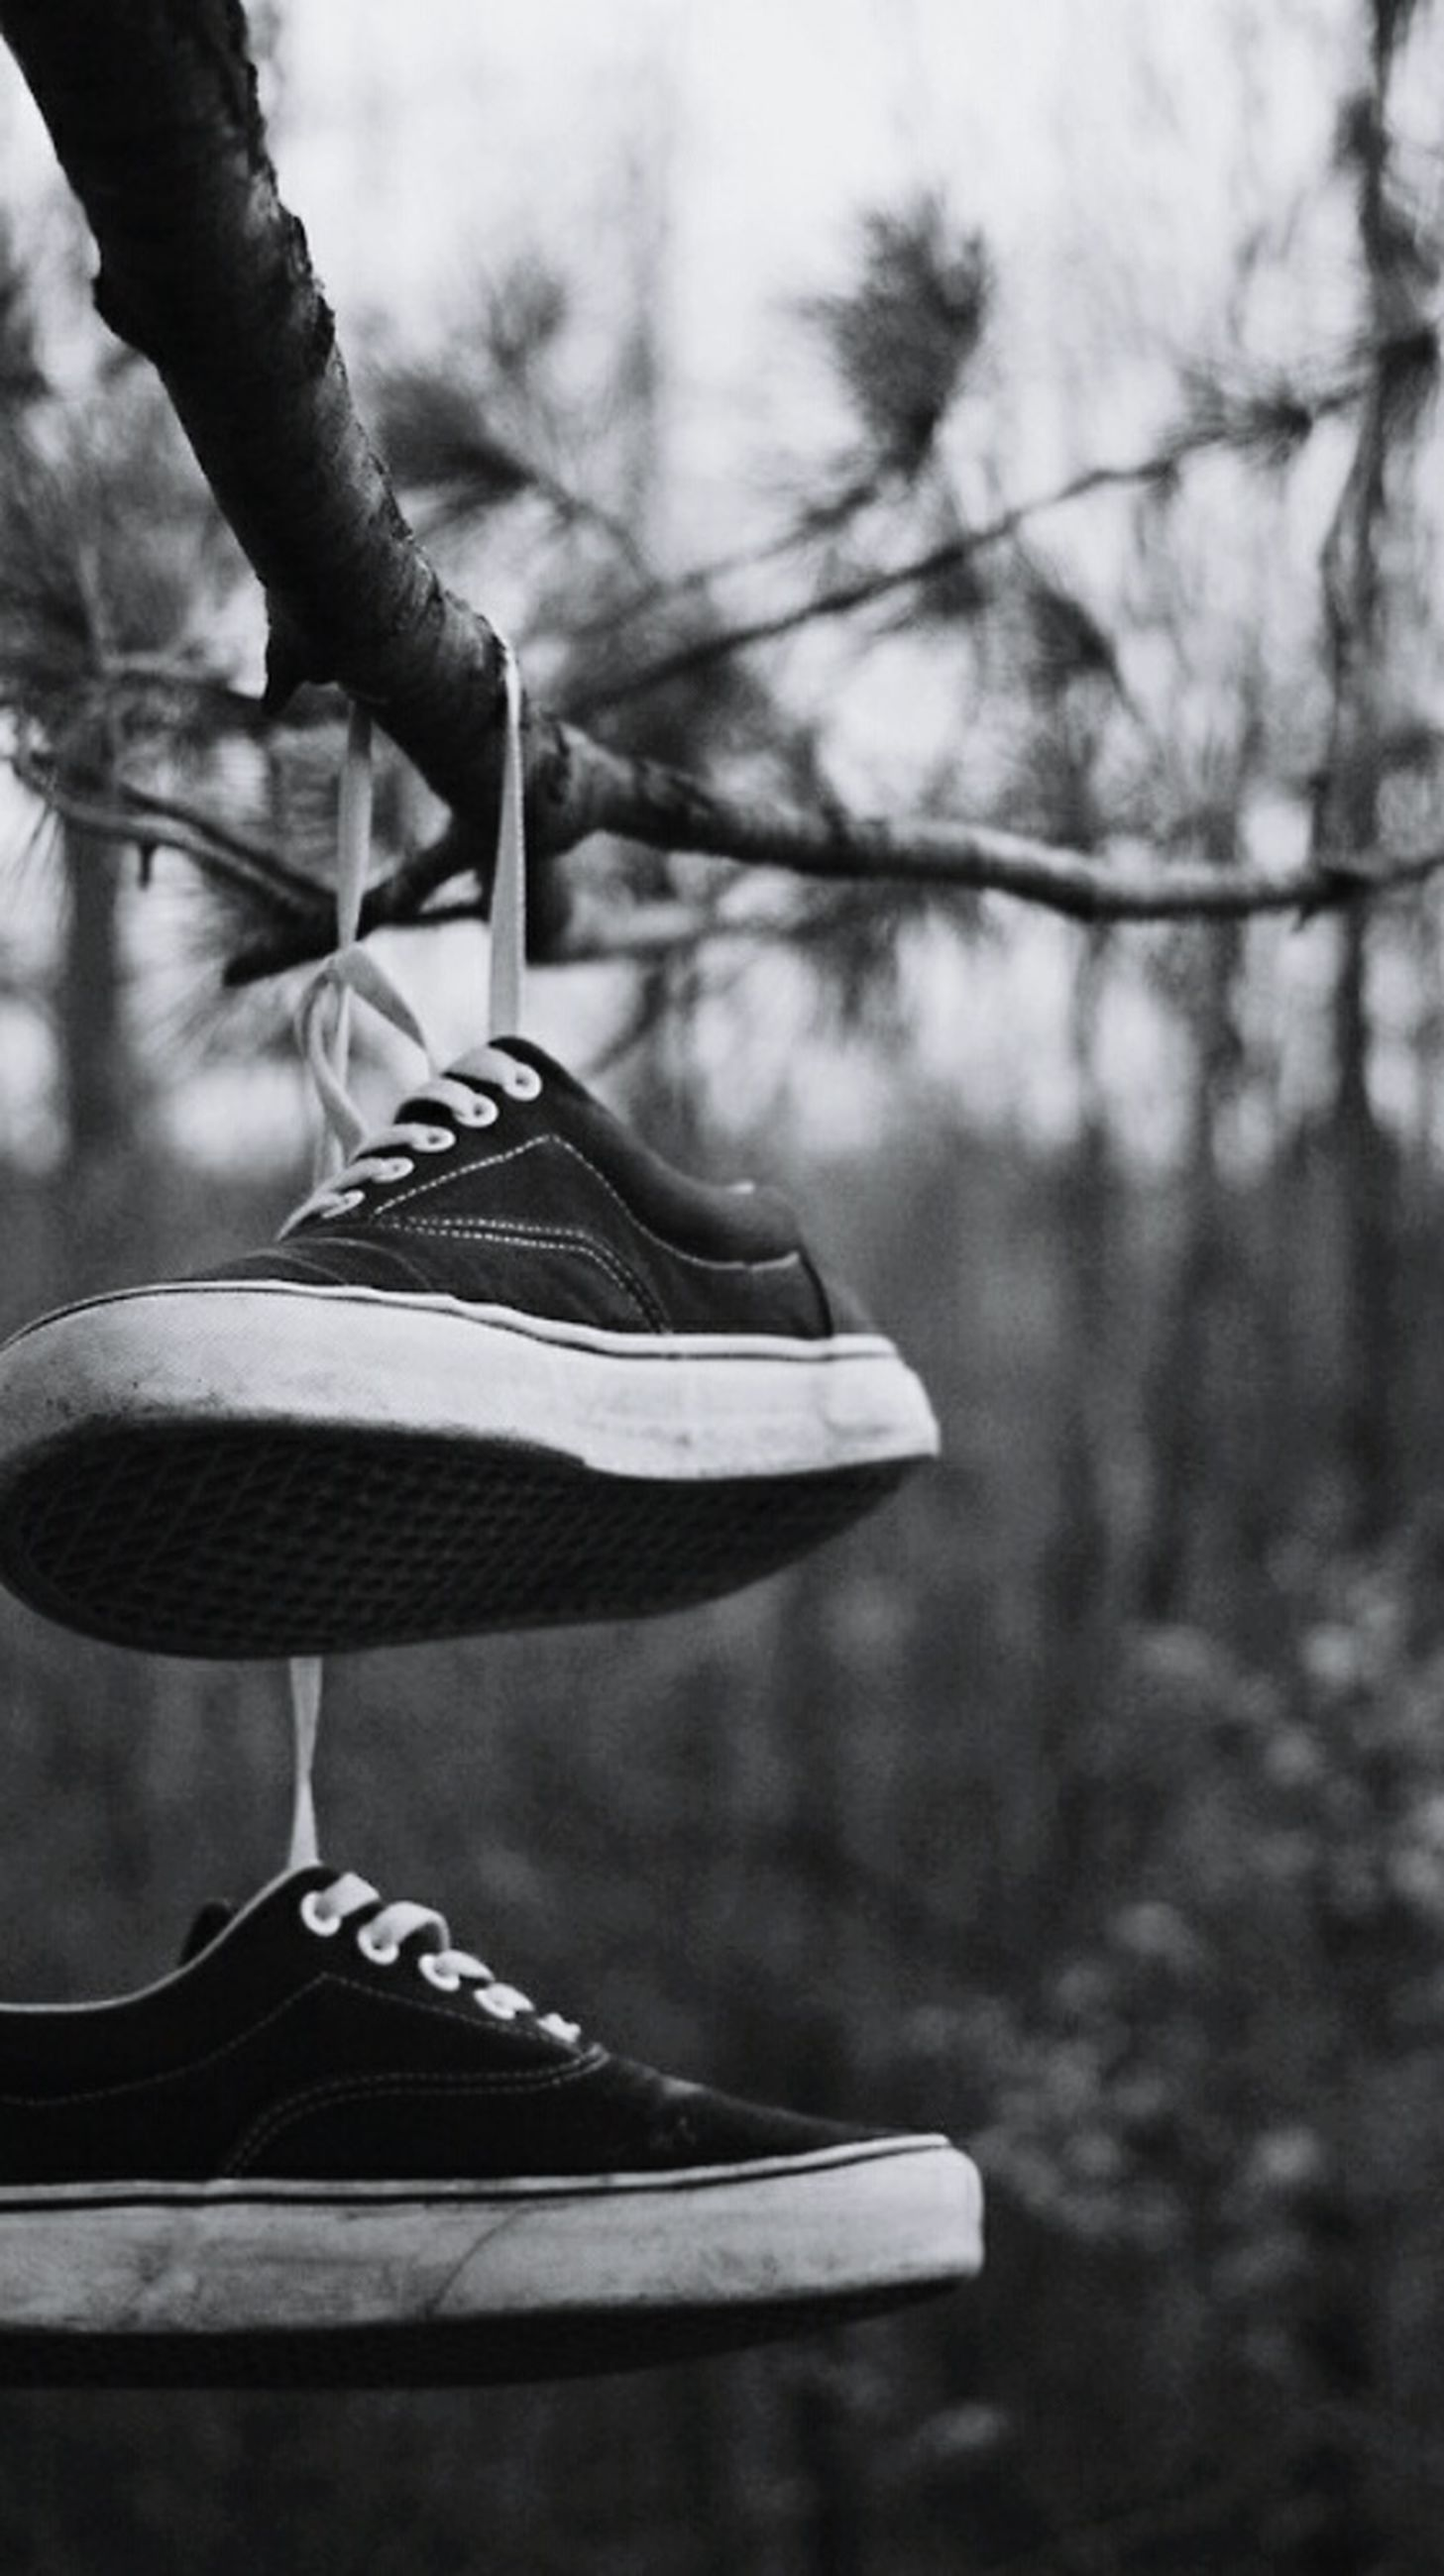 shoe, hanging, focus on foreground, pair, day, outdoors, no people, close-up, fashion, sport, tree